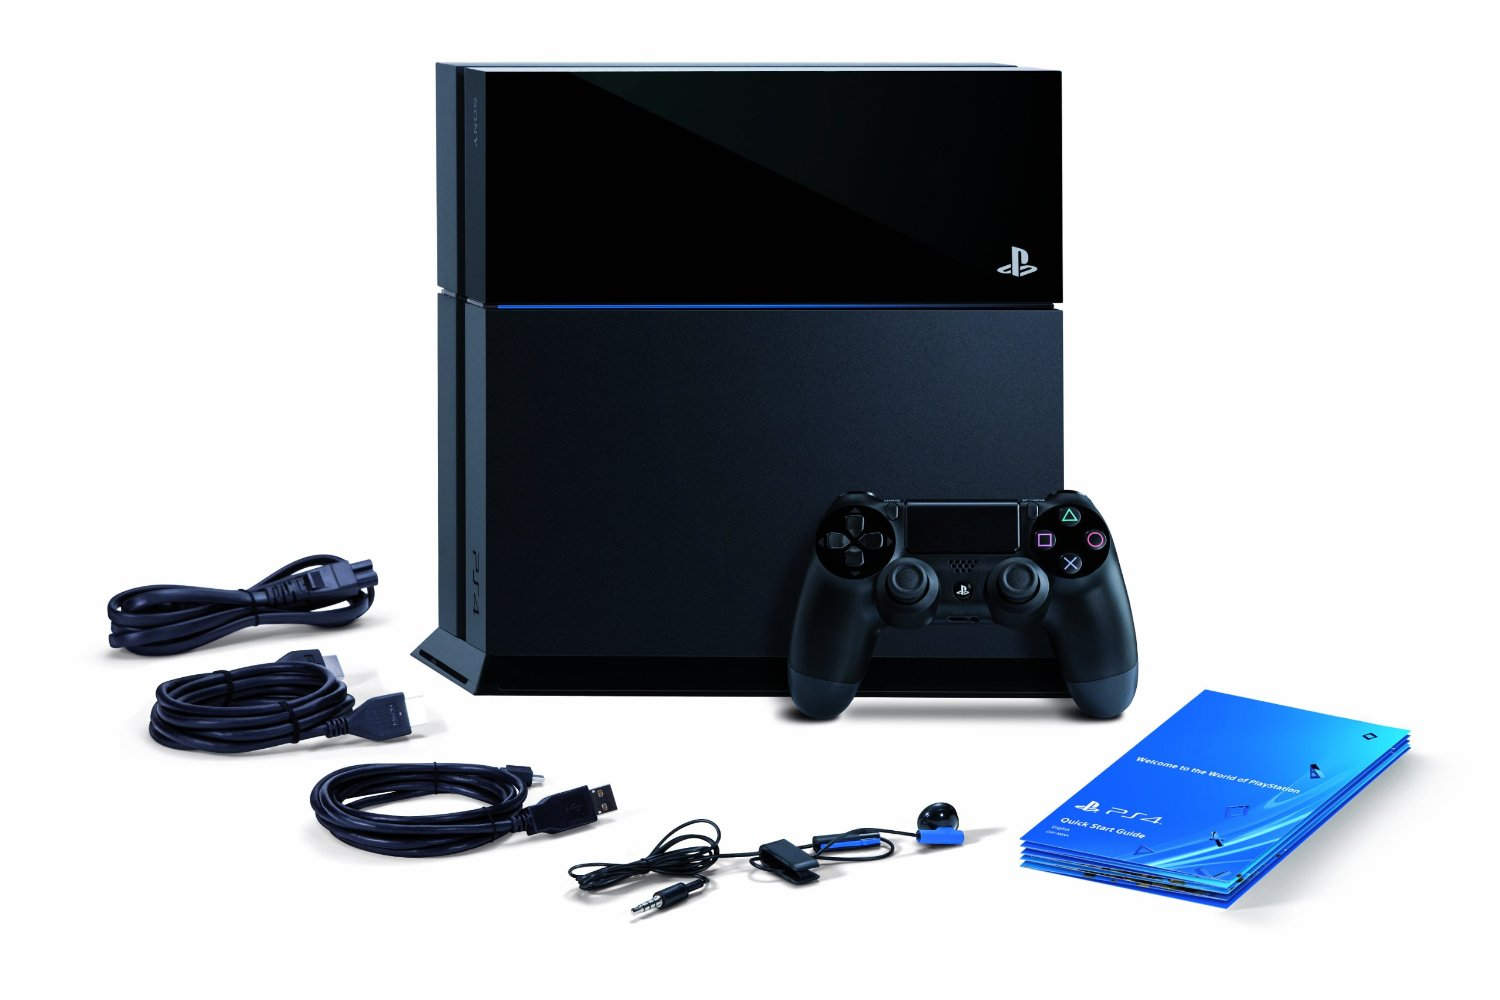 PS4 PlayStation 4 peru precio